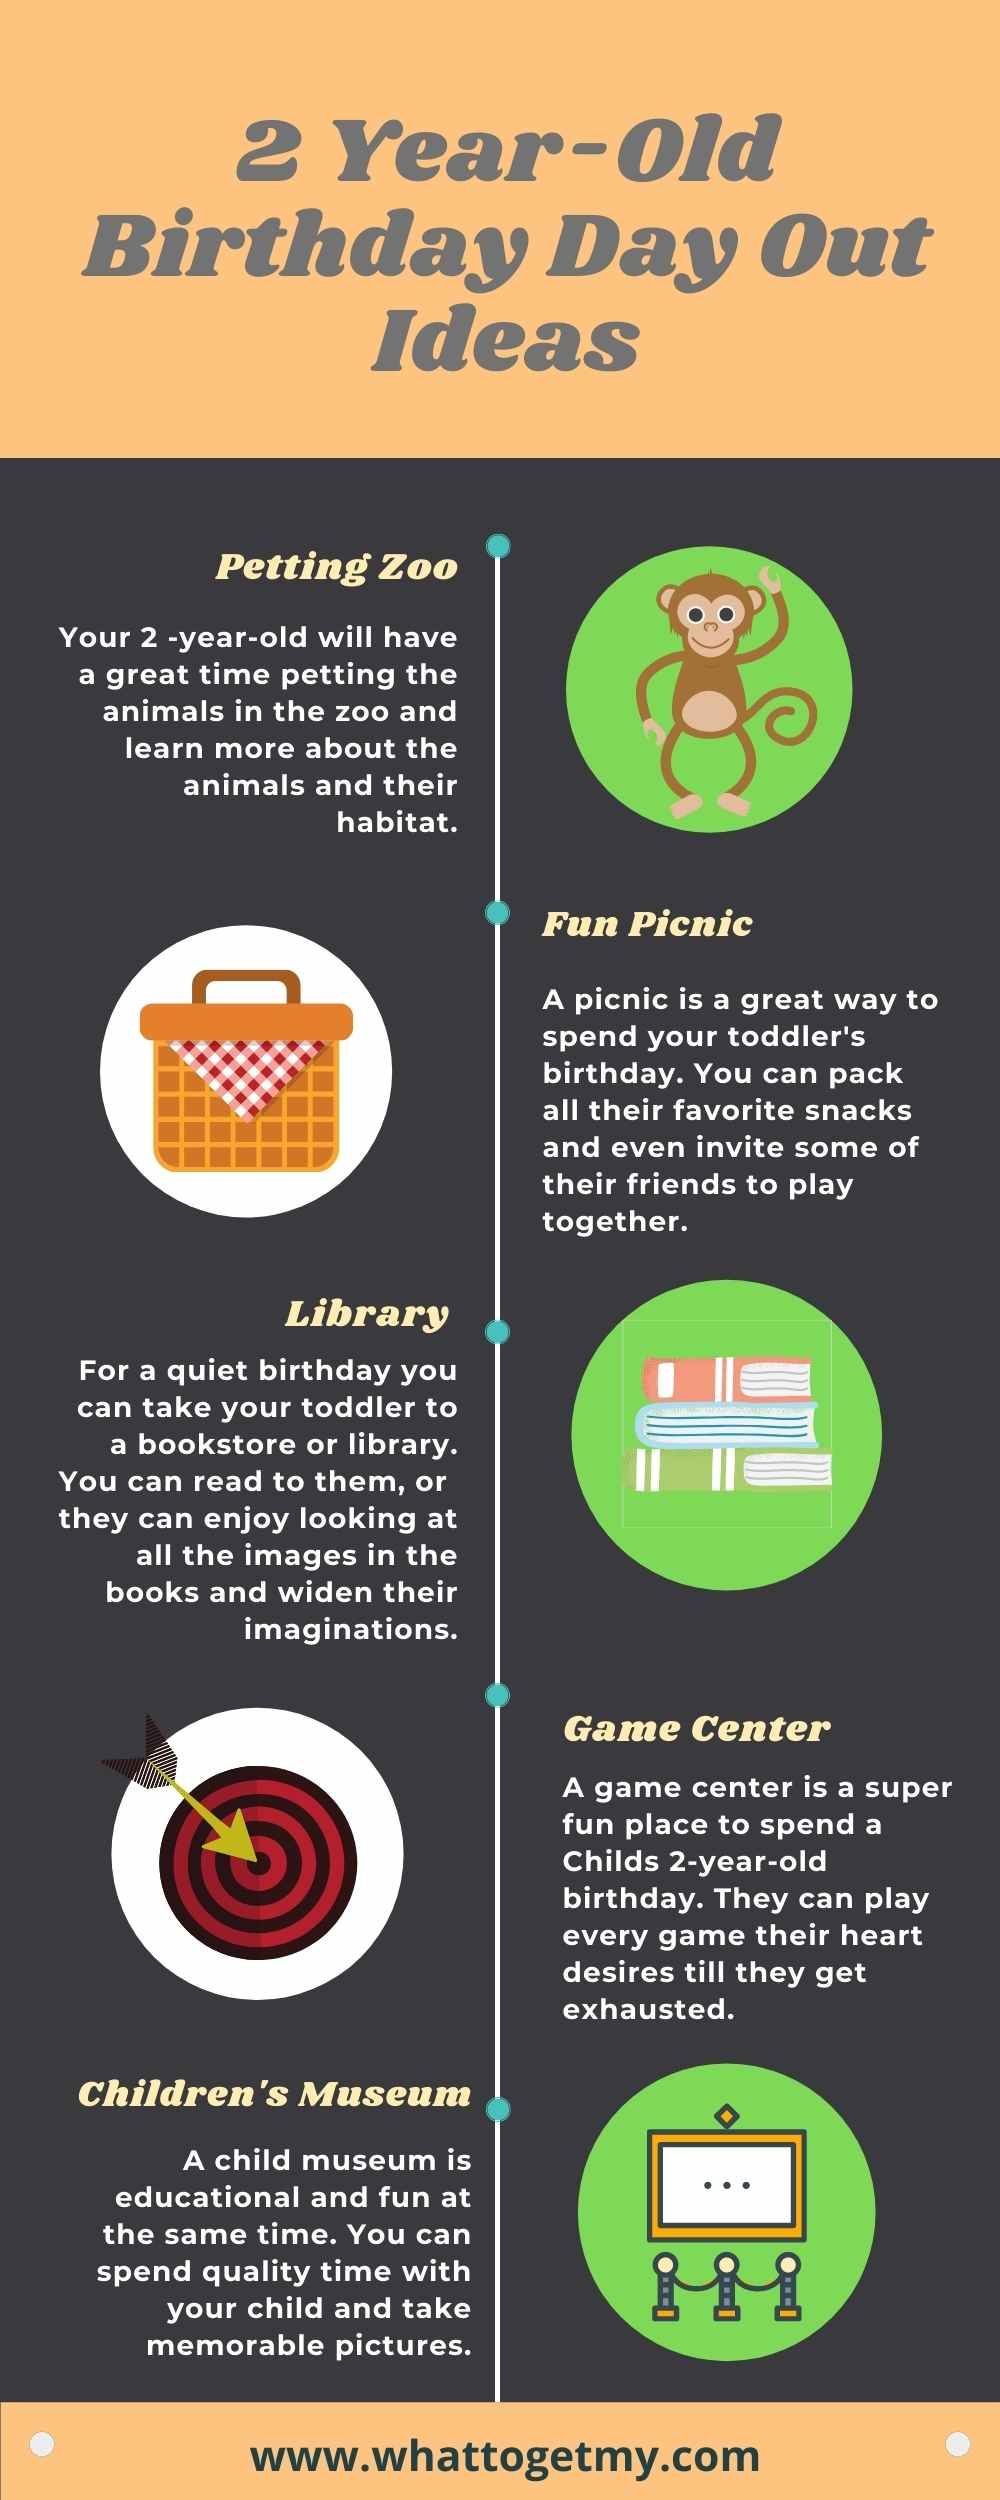 2 year old birthday day out ideas